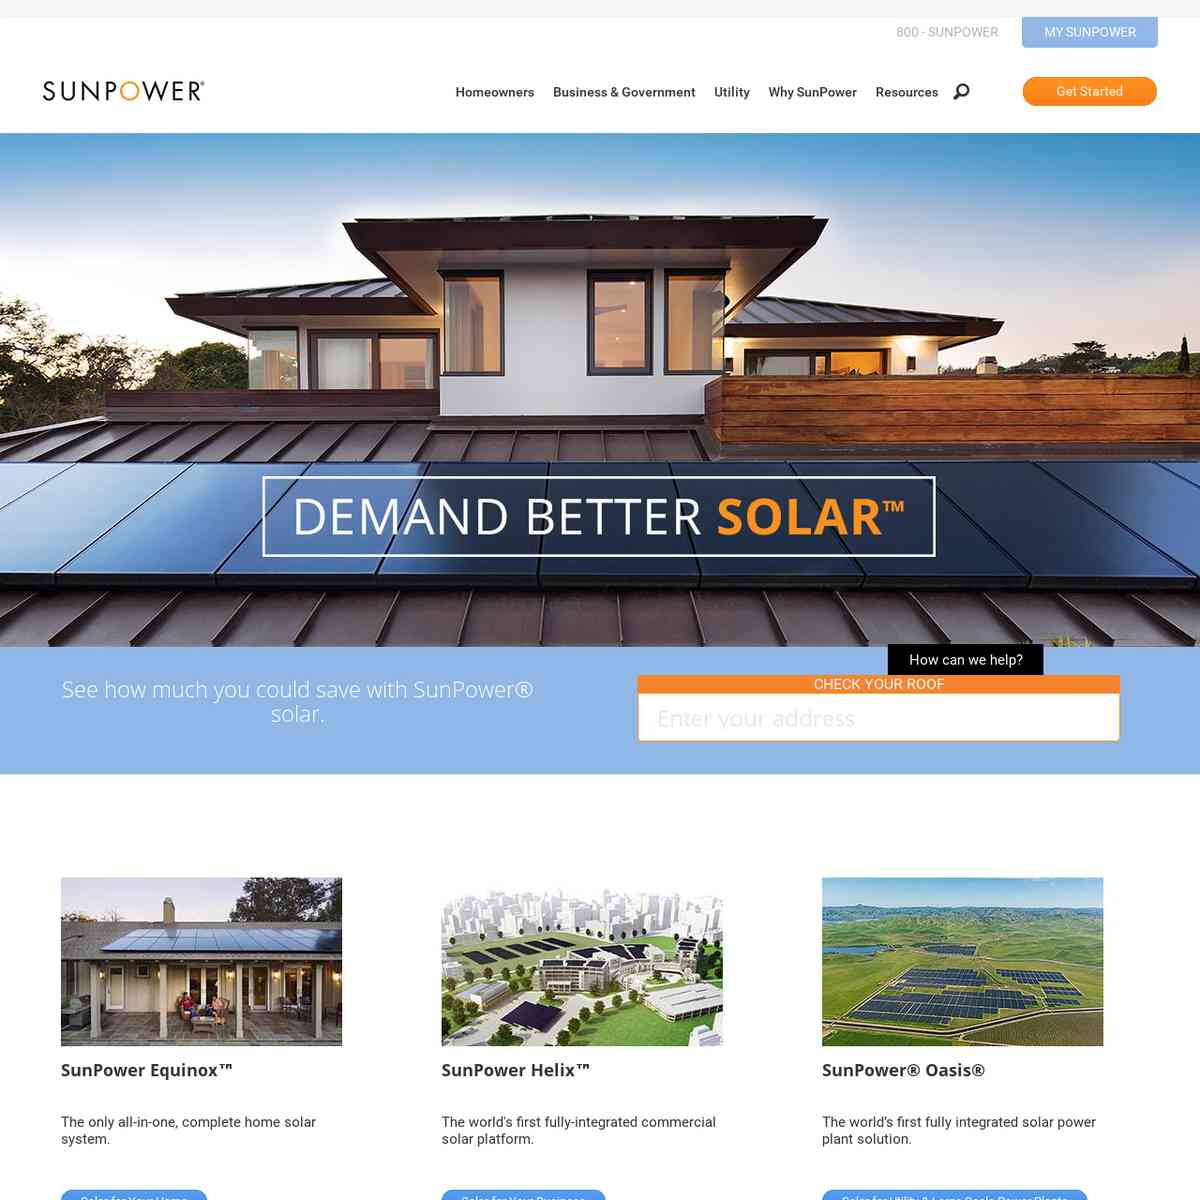 Home Solar Panels, Commercial & Utility-Scale Solar Solutions | SunPower